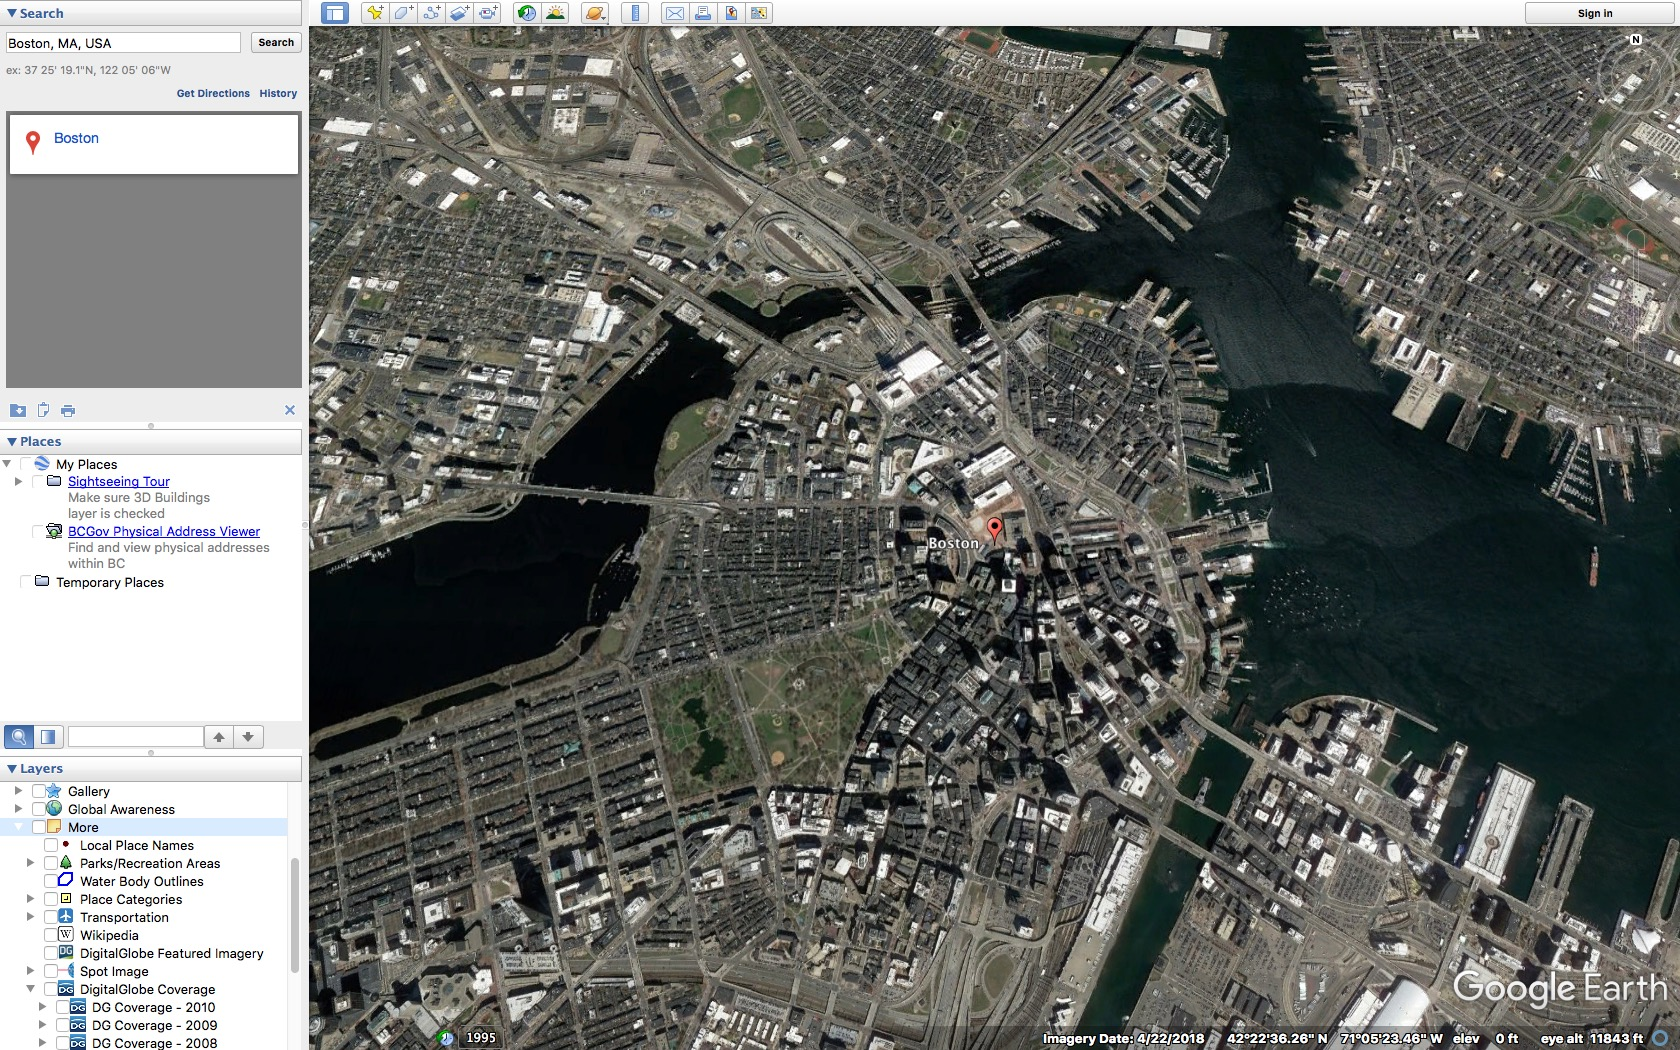 How do I get a blank map? - Google Maps Help Google Earth Vs Maps on world map, satellite map, google us map, from google to map, google maps car, google latitude, street view map, flat earth map, virtual earth map, europe map, google moon map, google street view, google sky, google africa map, gis map, the earth map, bing map, google maps italy, earth view map, united states map,